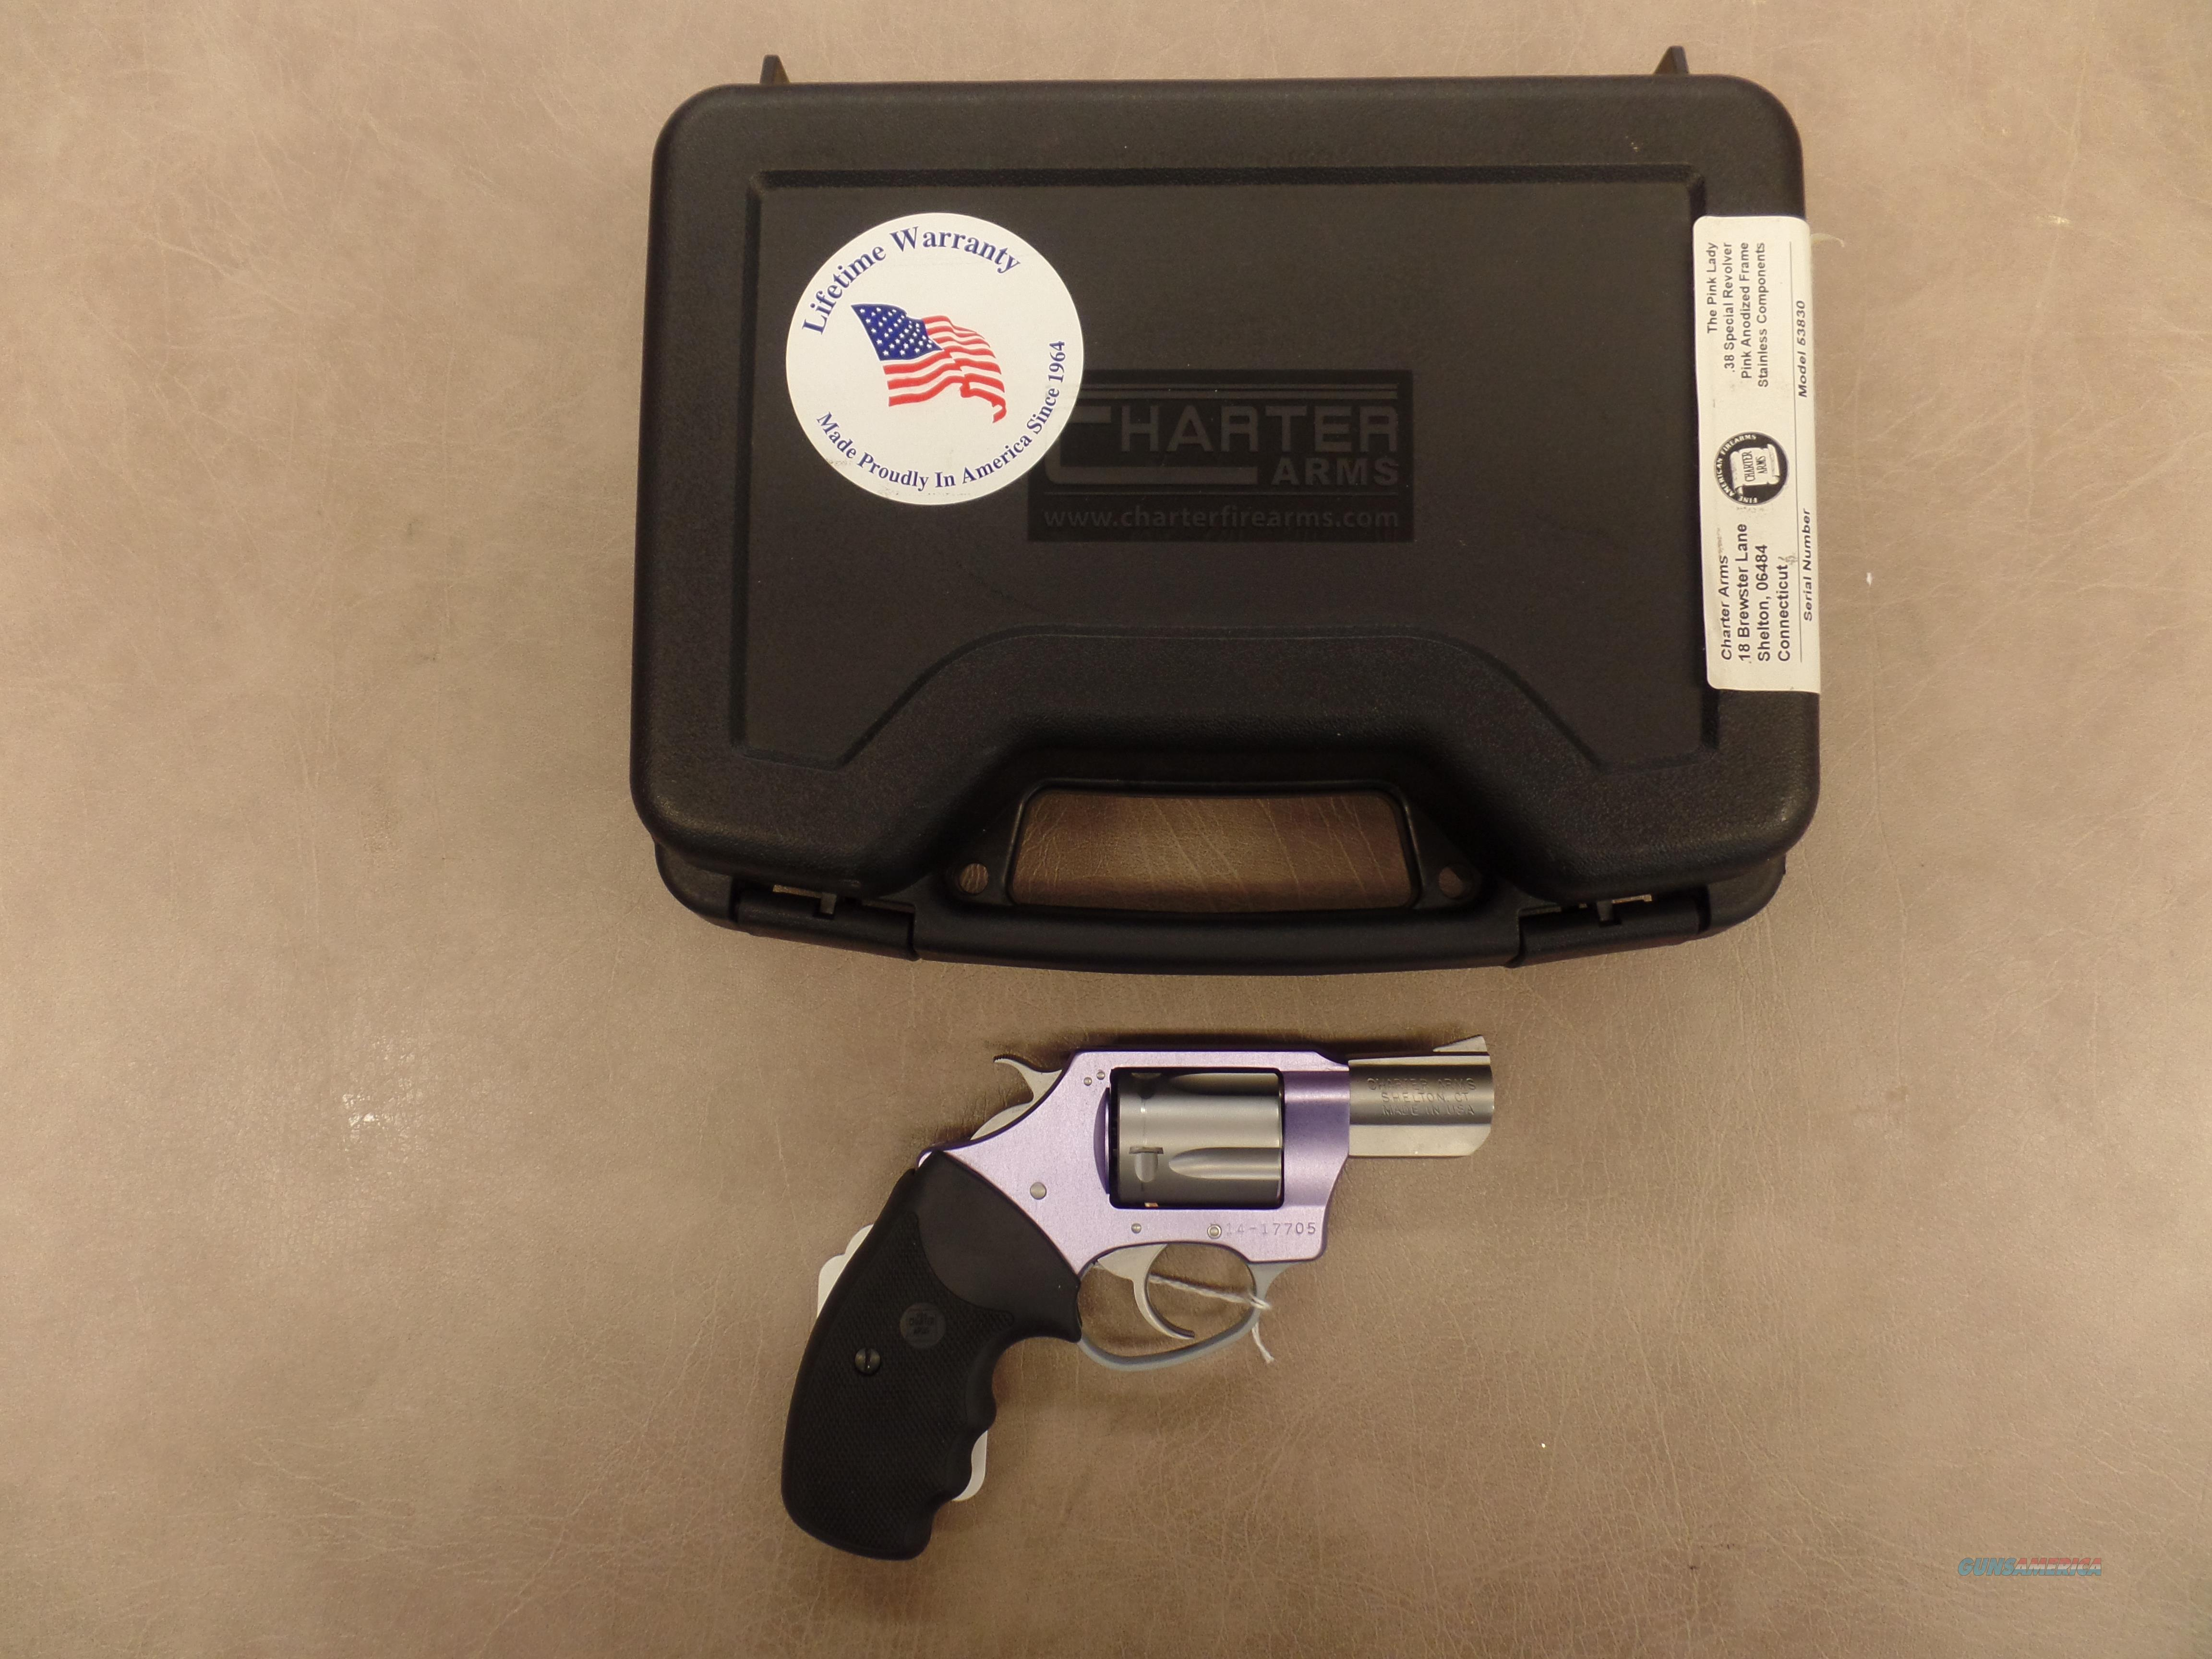 Charter Arms Under Cover Lavender Lady (22 Mag)  Guns > Pistols > Charter Arms Revolvers